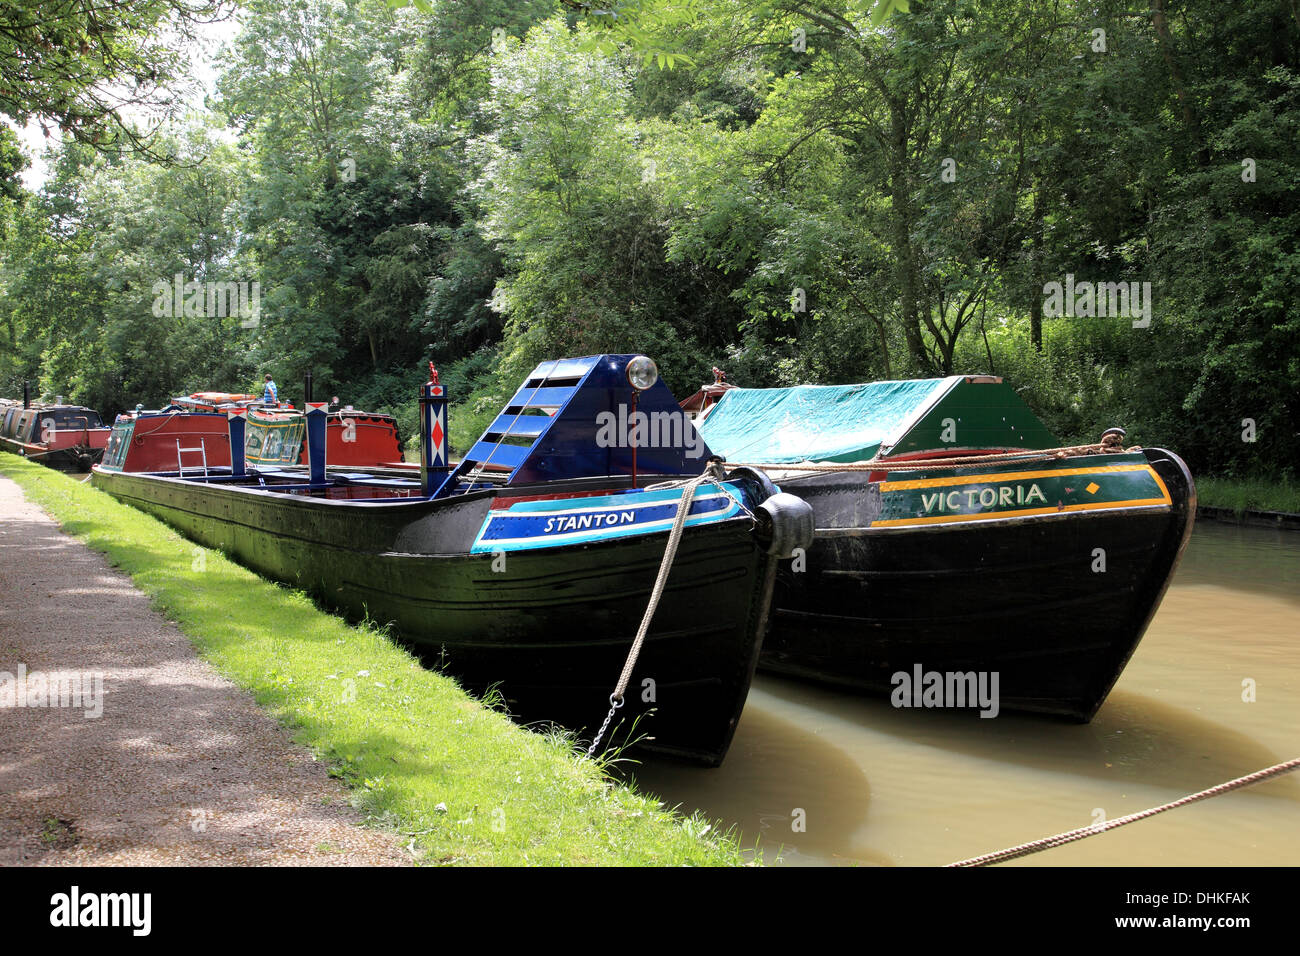 Two historic freight carrying narrowboats moored on the Grand Union Canal at Stoke Bruerne - Stock Image